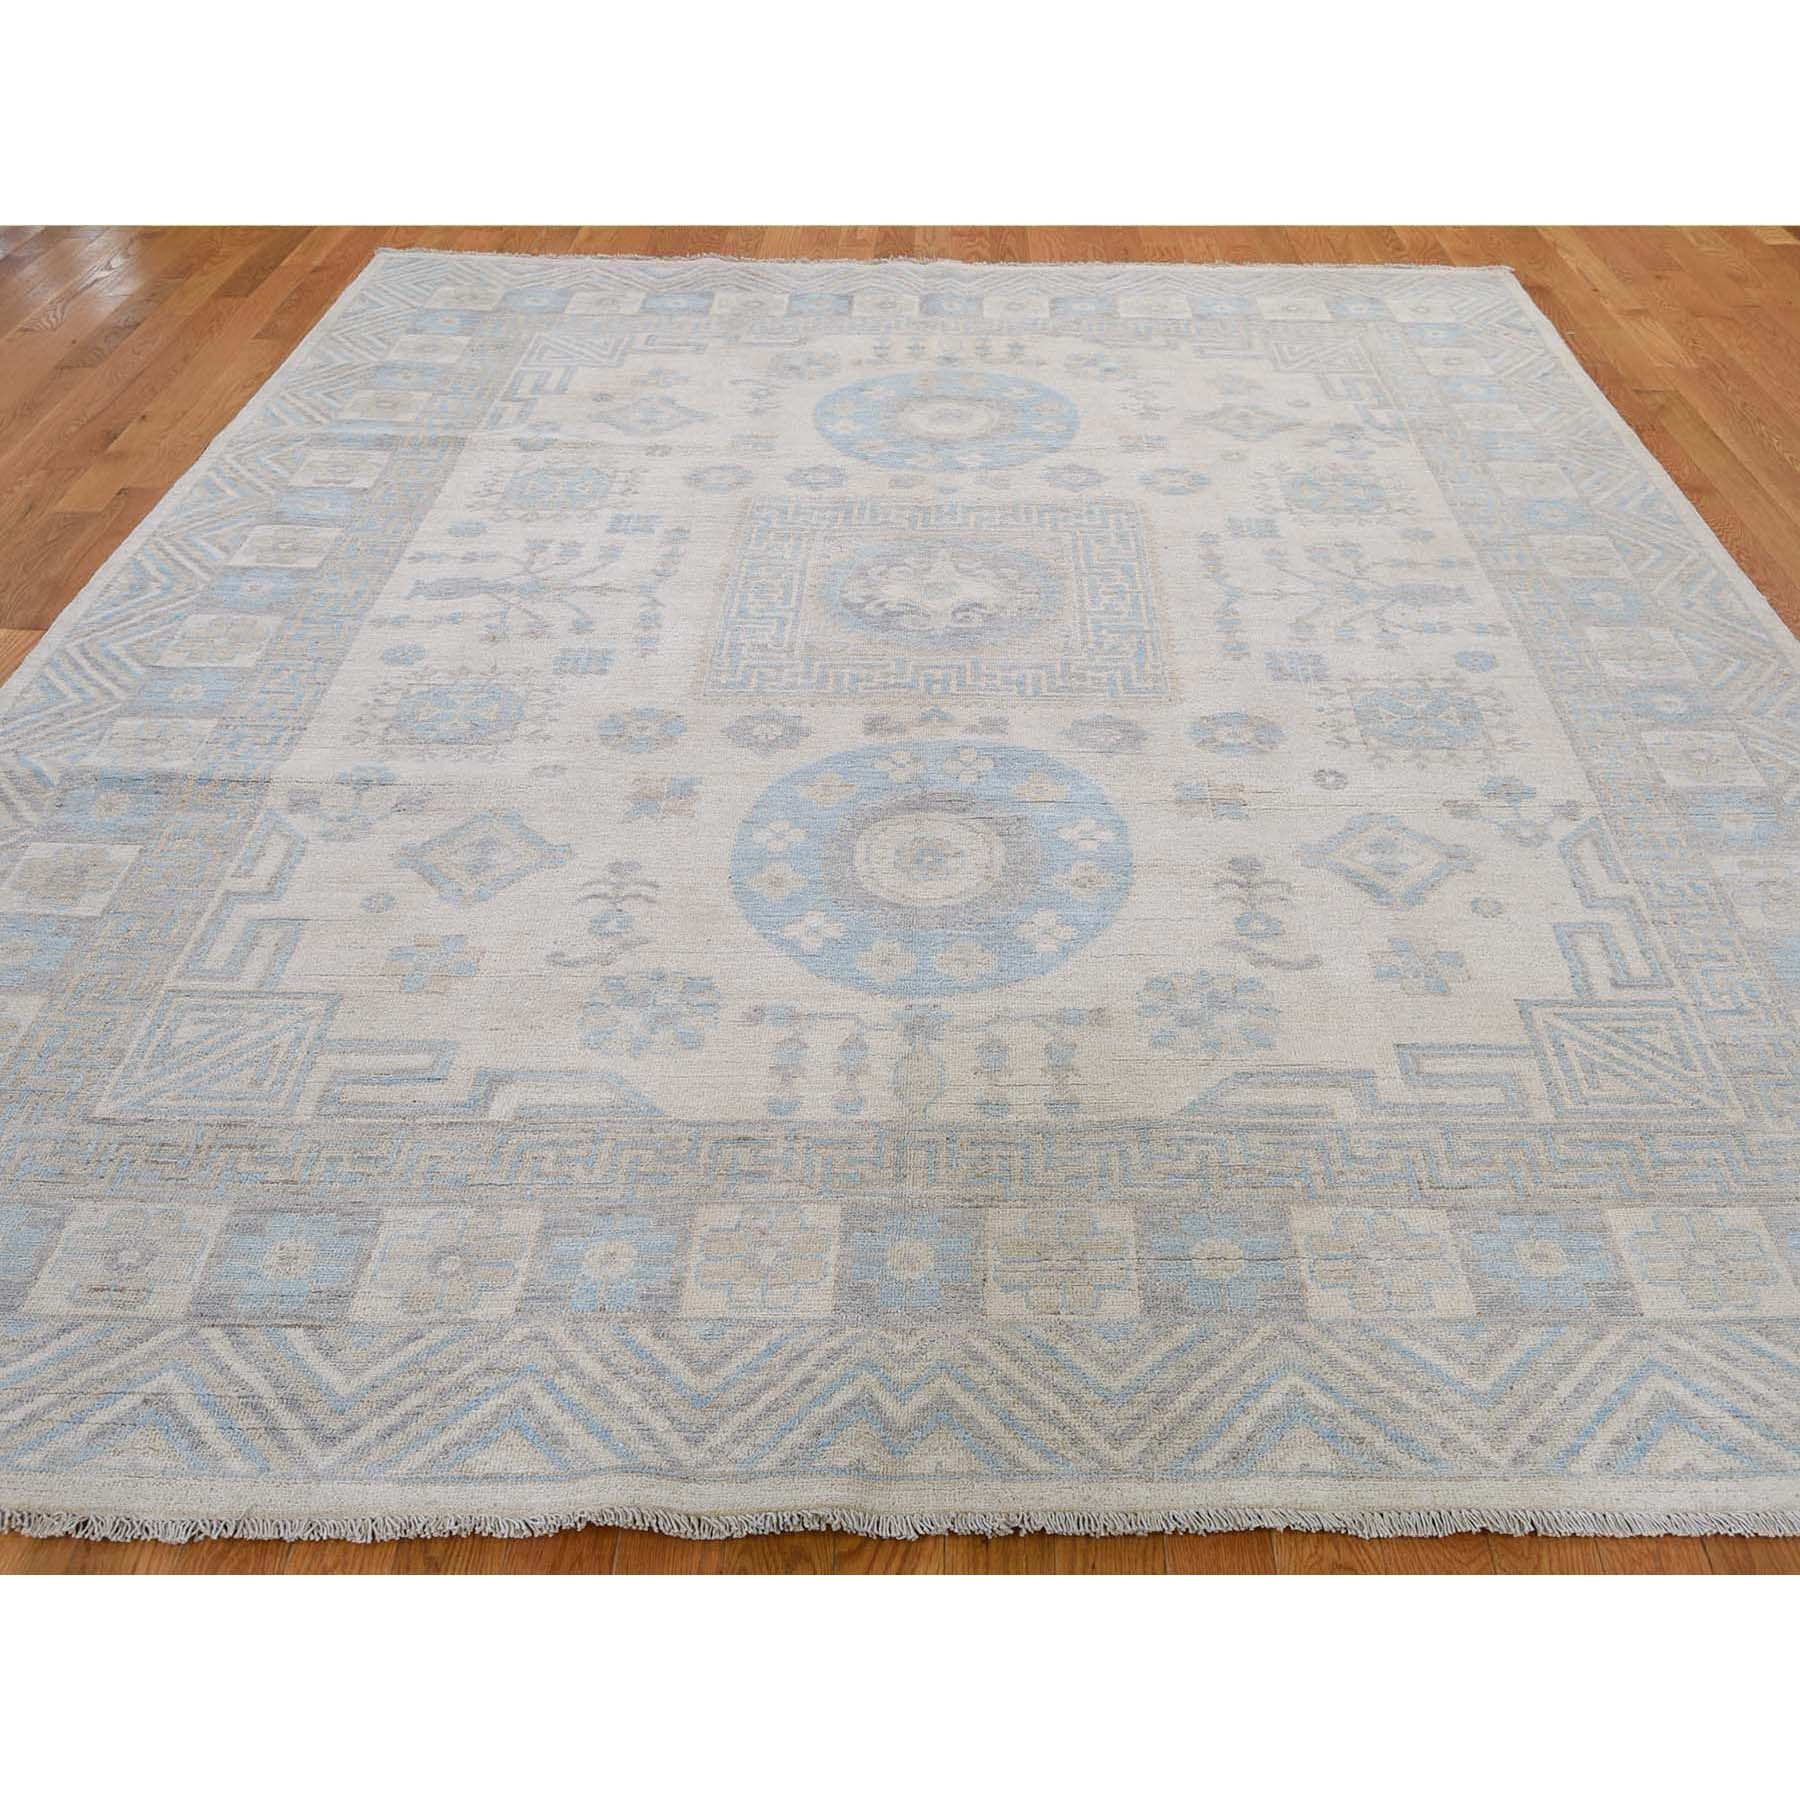 8-1 x9-9  Khotan Pure Wool Washed Out Hand-Knotted Oriental Rug